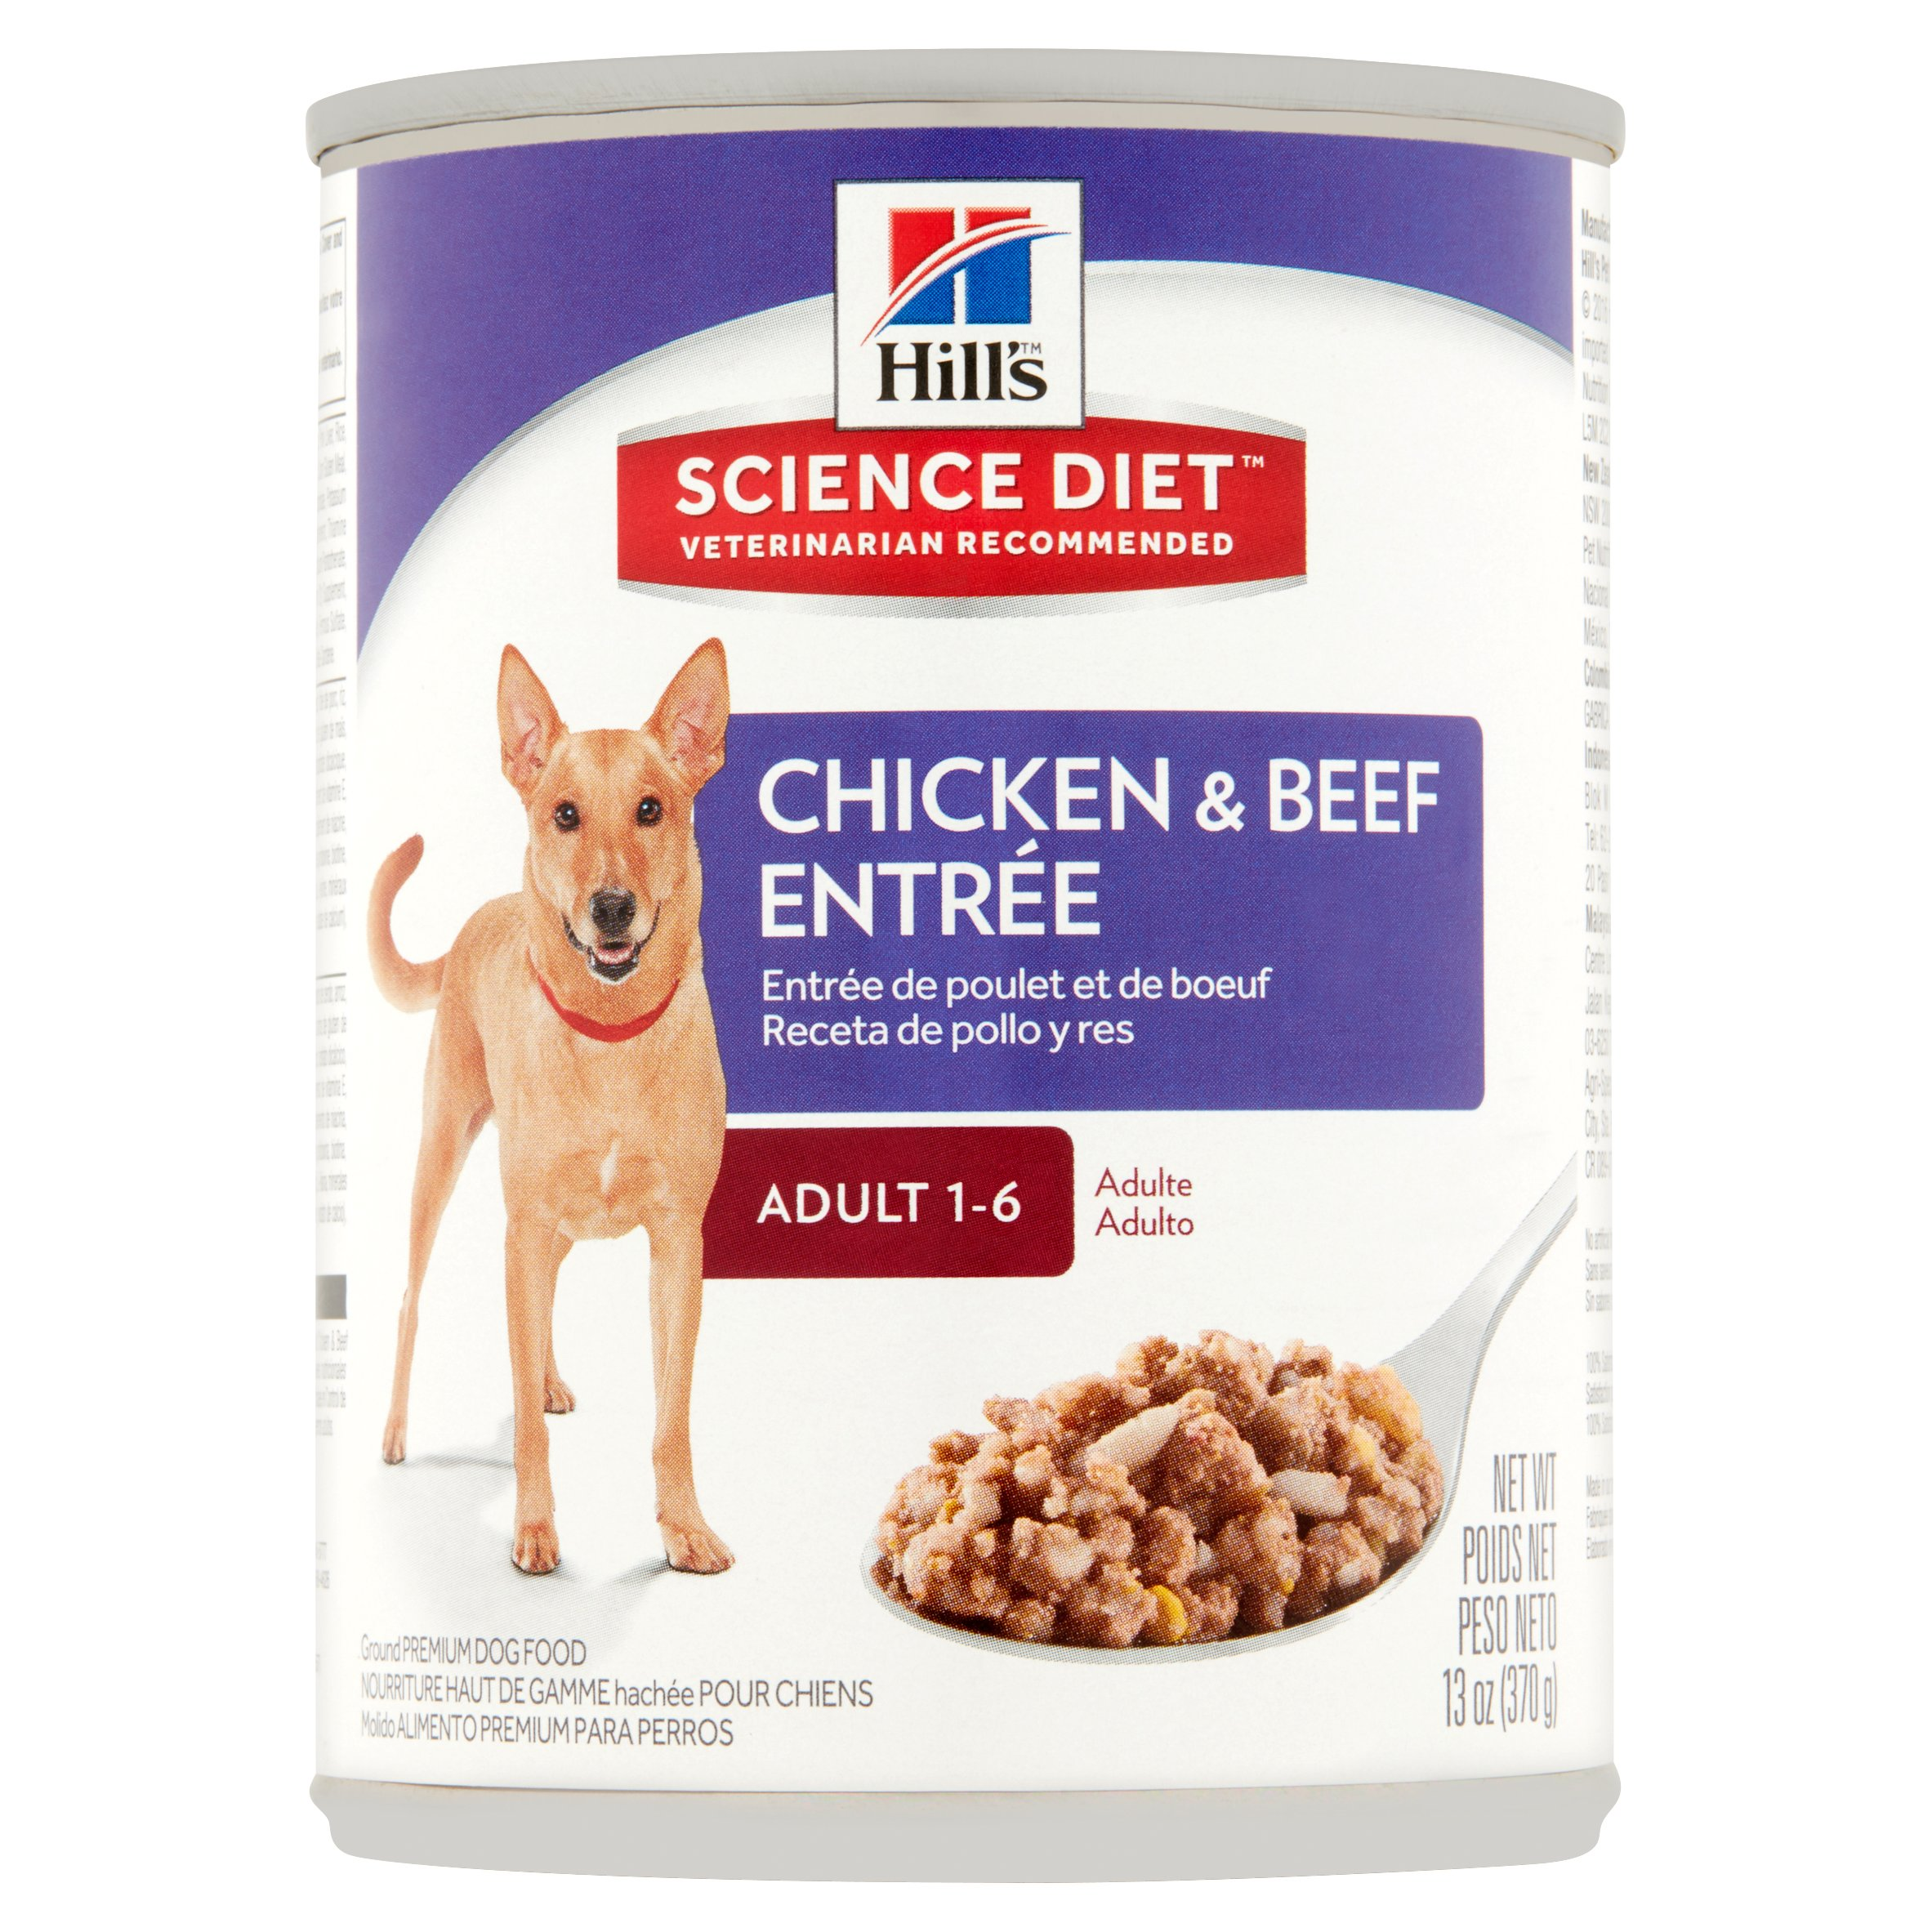 Hill's Science Diet Adult Chicken & Beef Entrée Canned Dog Food, 13 oz, 12-pack